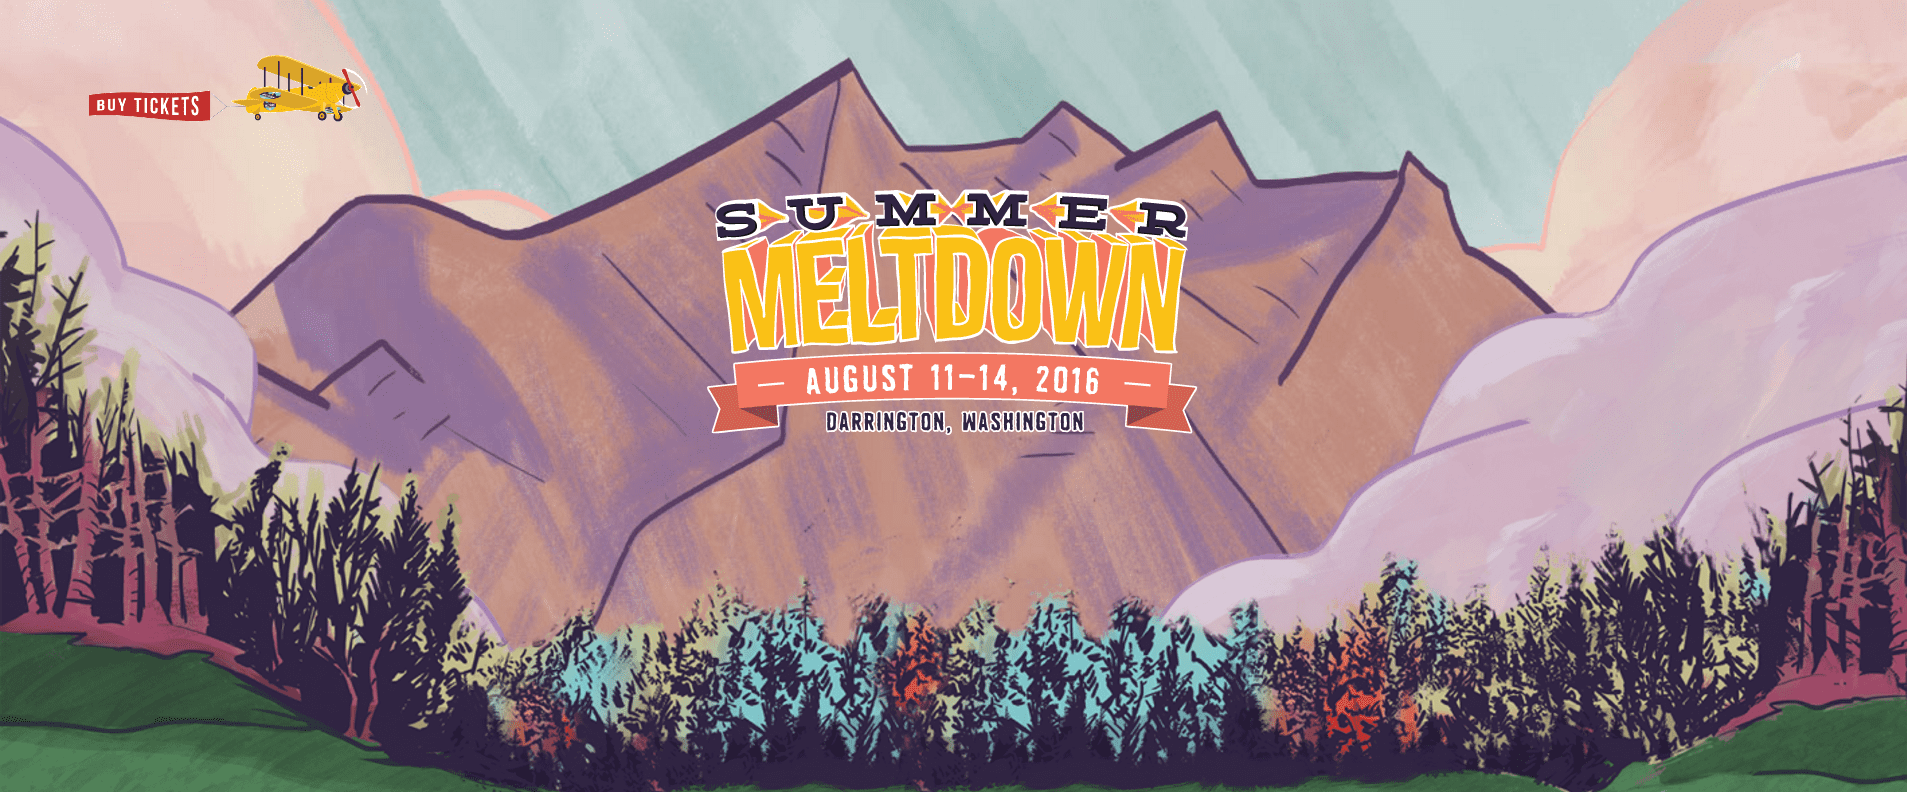 Artist Recreates Summer Meltdown Poster